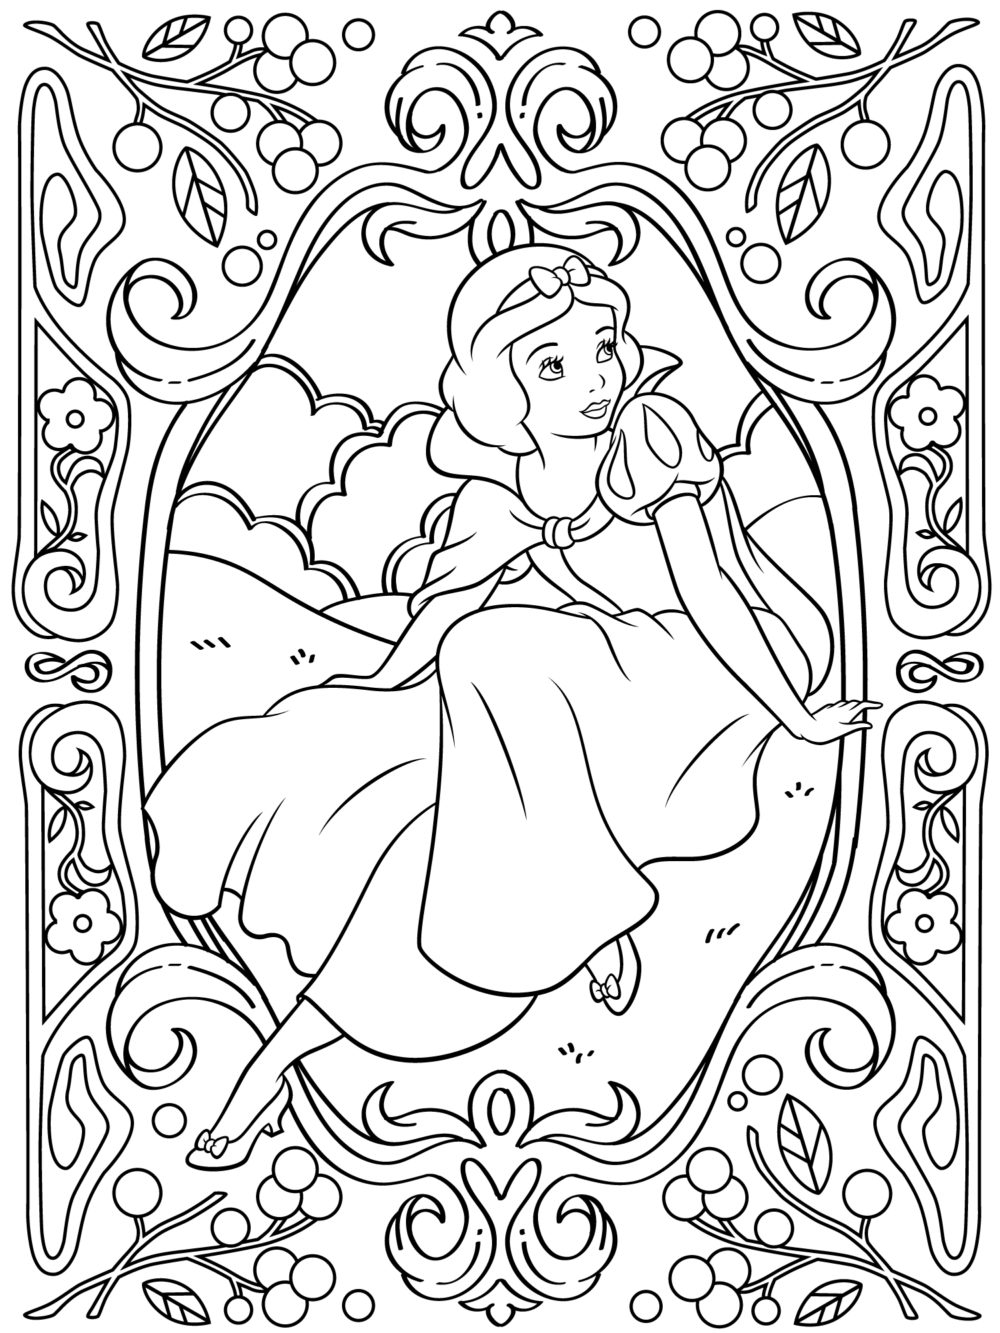 Cute Chubby Clipart Coloring Pages.